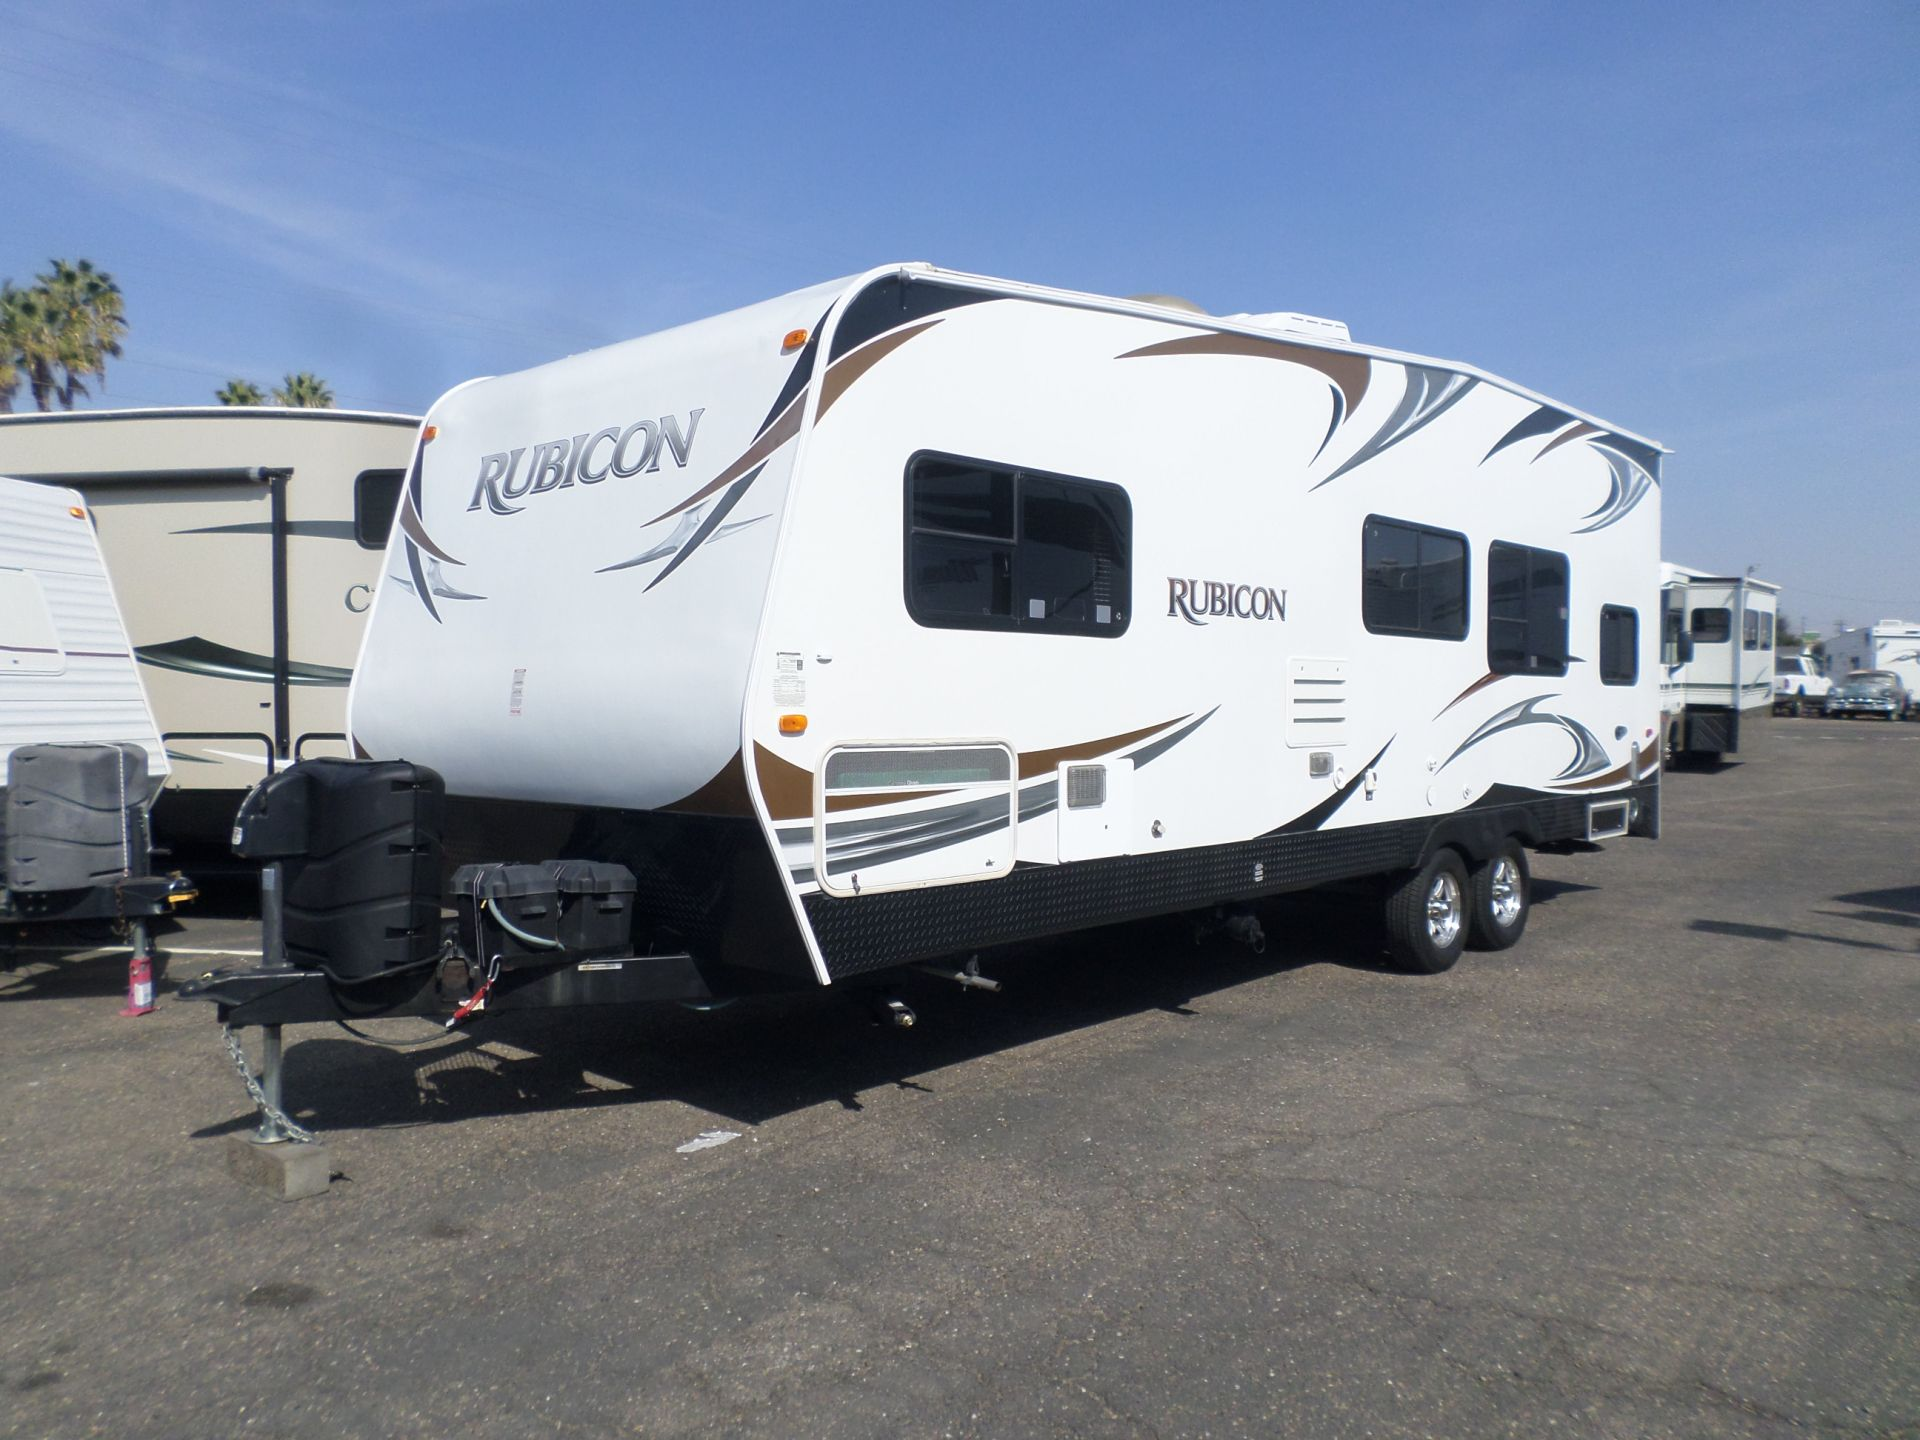 2013 Dutchmen Rubicon Toy Hauler Travel Trailer  26'